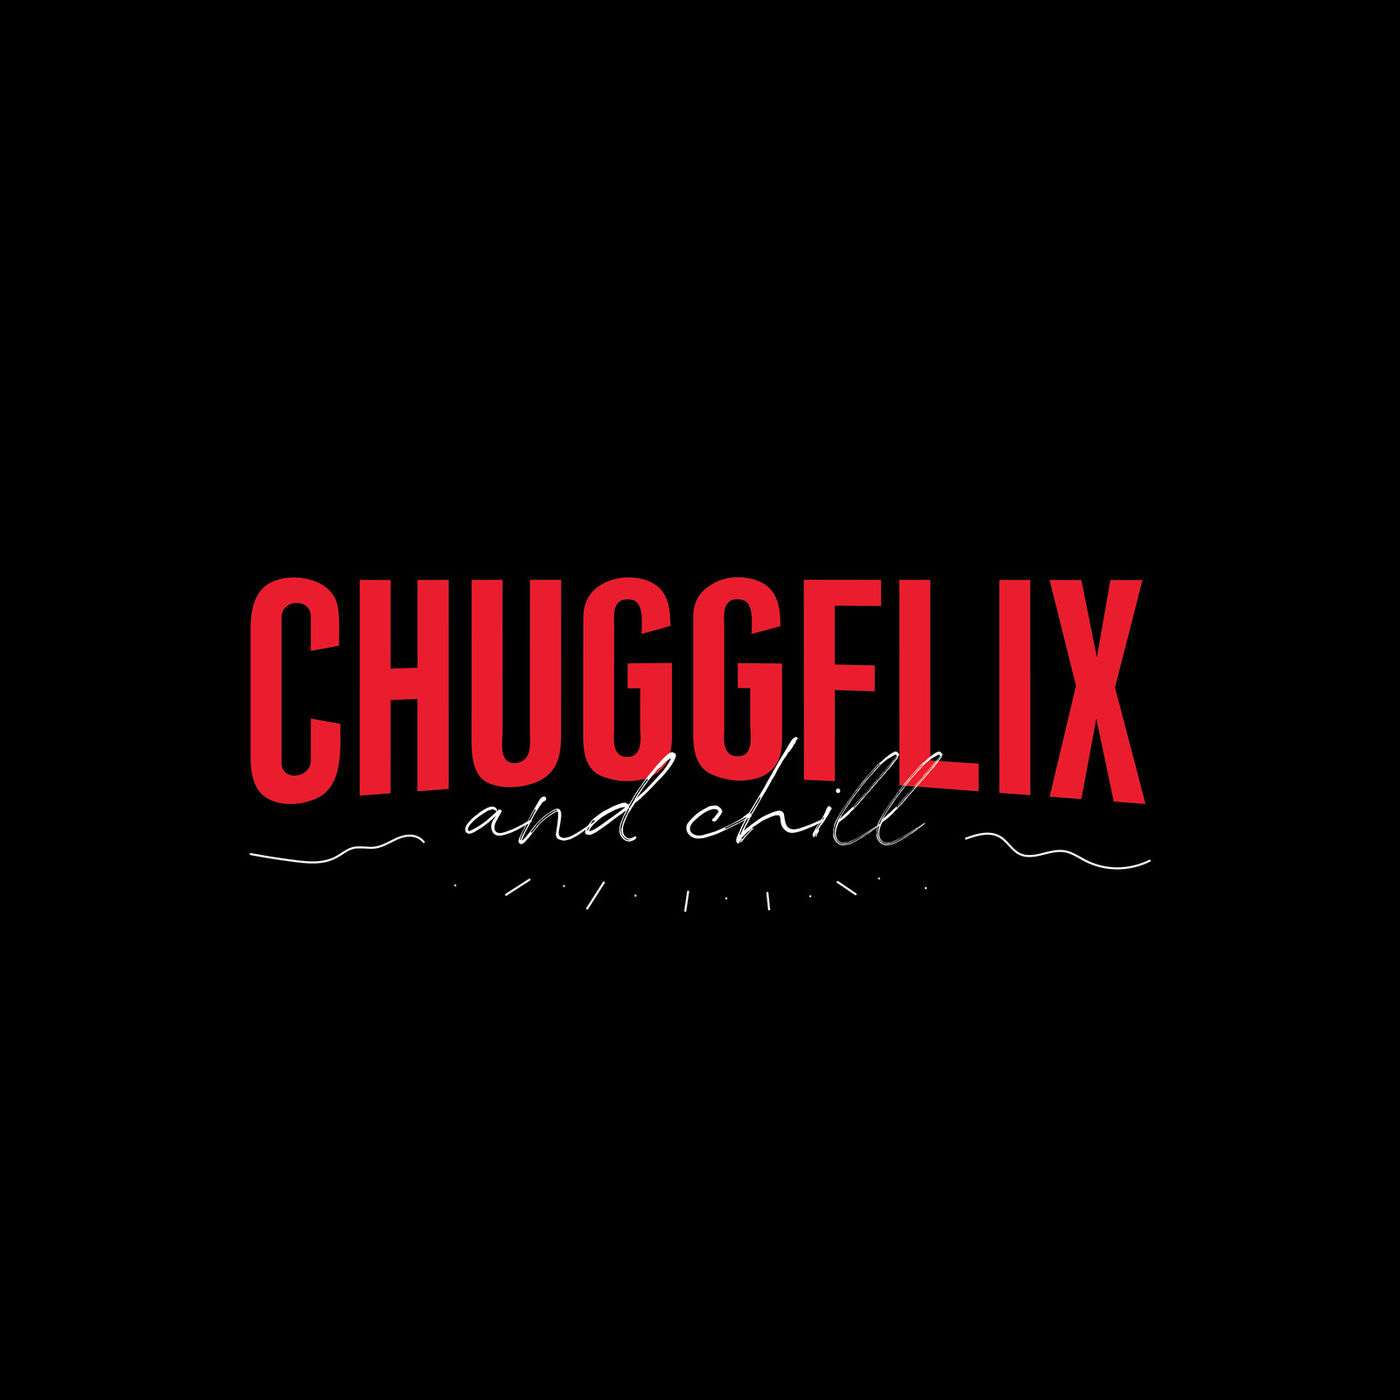 ChuggaBoom - Chuggflix and Chill [single] (2020)